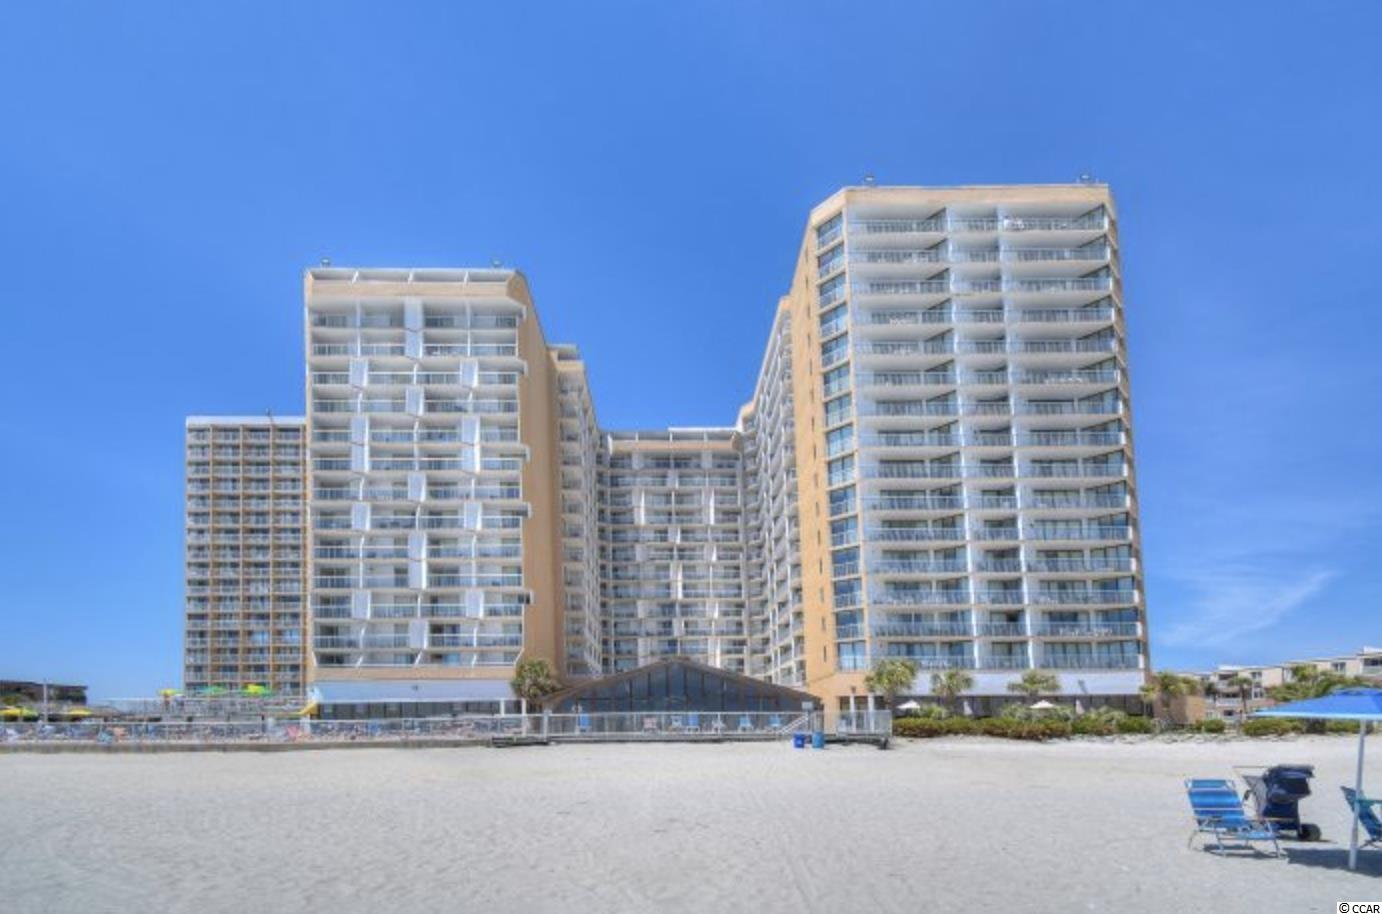 This 2 bedroom 2 bath ocean view condo is located at Sands Ocean Club in the desirable Arcadian Shores section of Myrtle Beach.  The oversize balcony extending the length of the living room and master bedroom has expansive views of the SC coast line.  Sands Ocean Club is home to the famous Ocean Annie's and has many amenities for your family to enjoy.  This unit has an efficiency lock out that can be purchased separately.